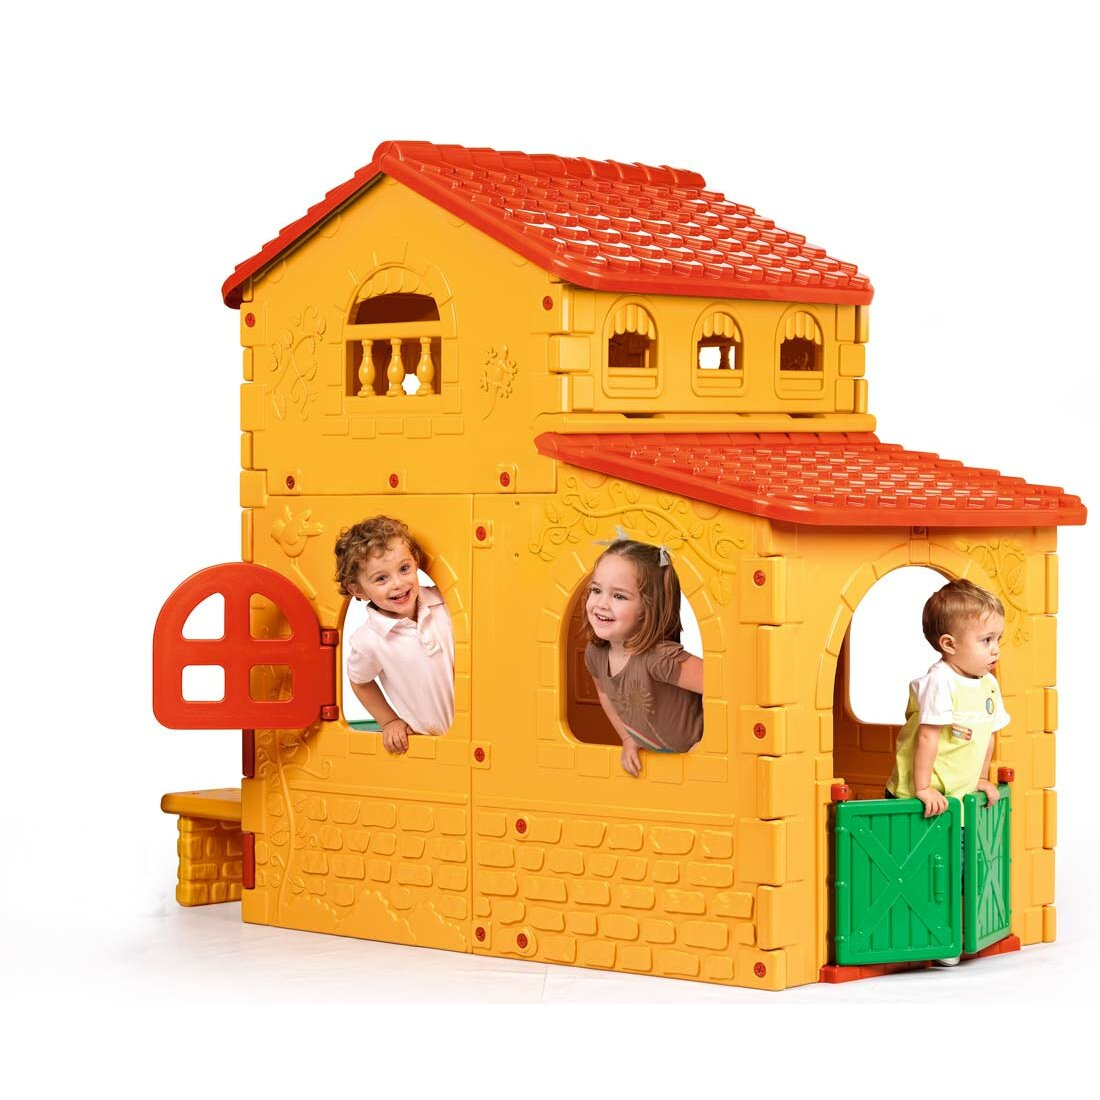 Ecr4kids active play country estate playhouse reviews - Maison de jardin enfant ...